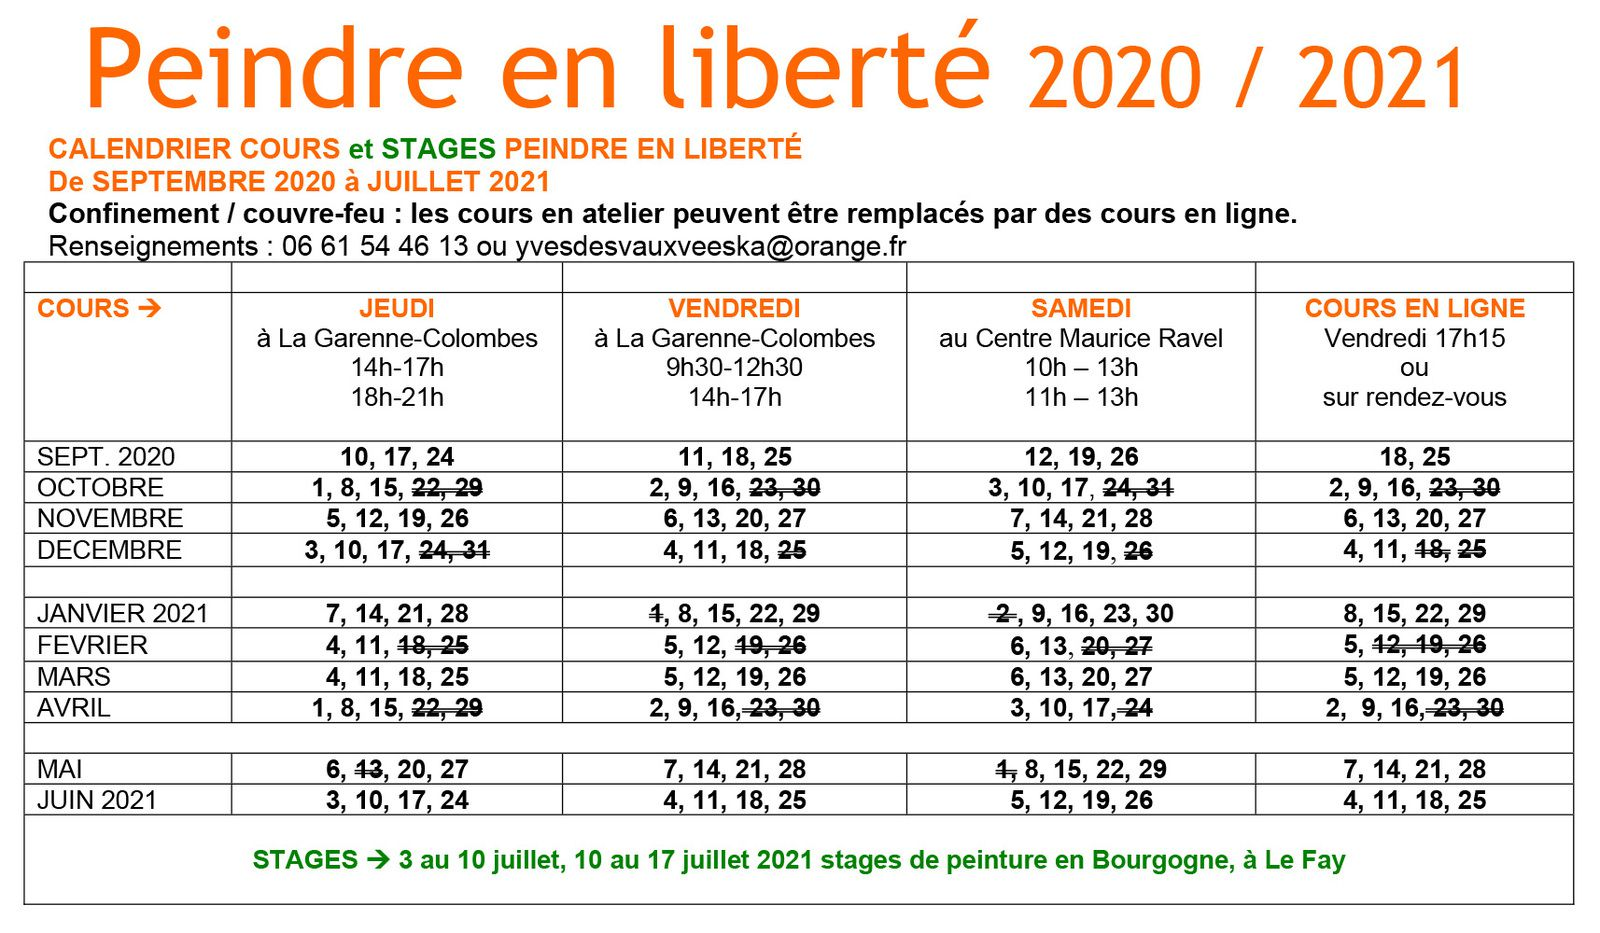 5. Calendrier cours et stages 2020 / 2021